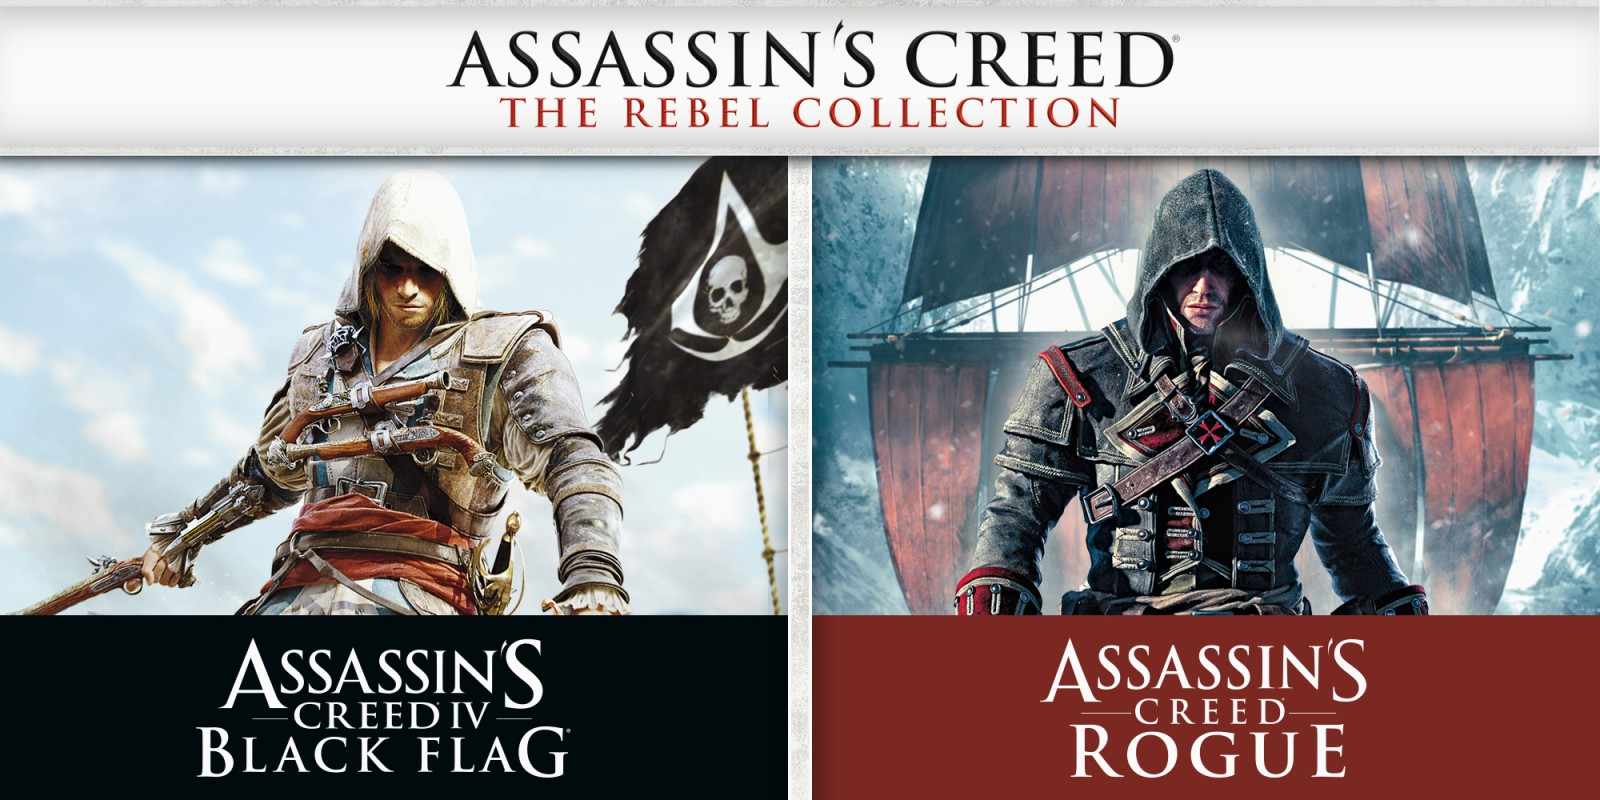 Assassin's Creed The Rebel Collection Nintendo Switch Review